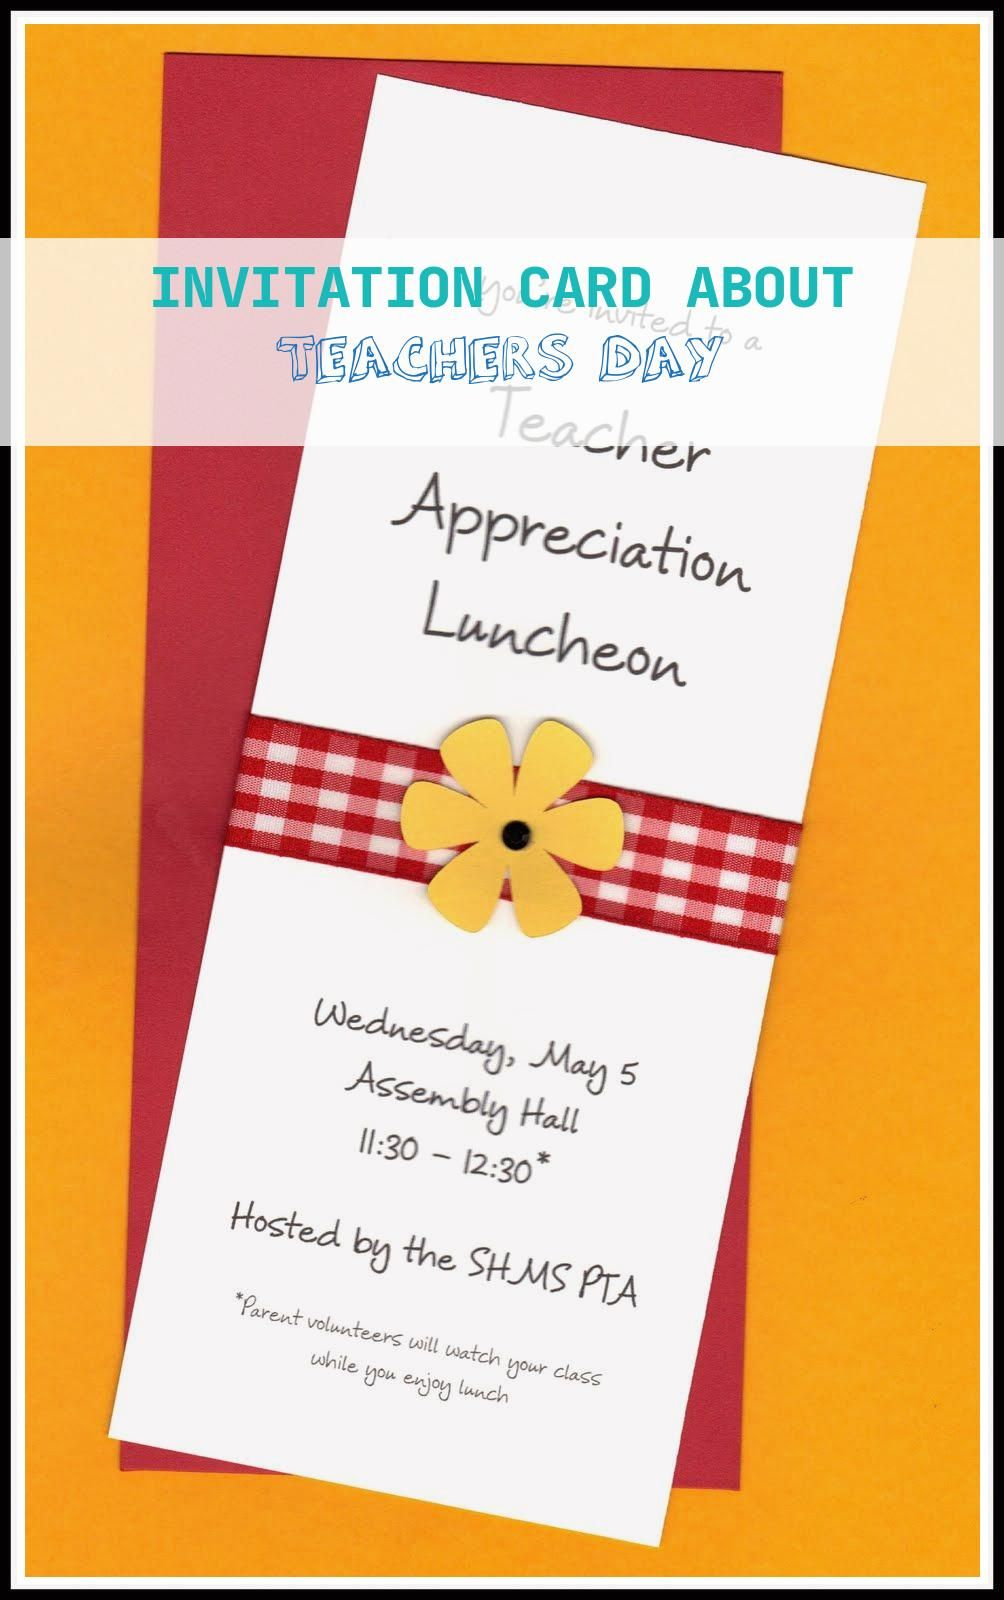 15 Topmost Invitation Card About Teachers Day Invitation Card Sample Potluck Invitation Invitations